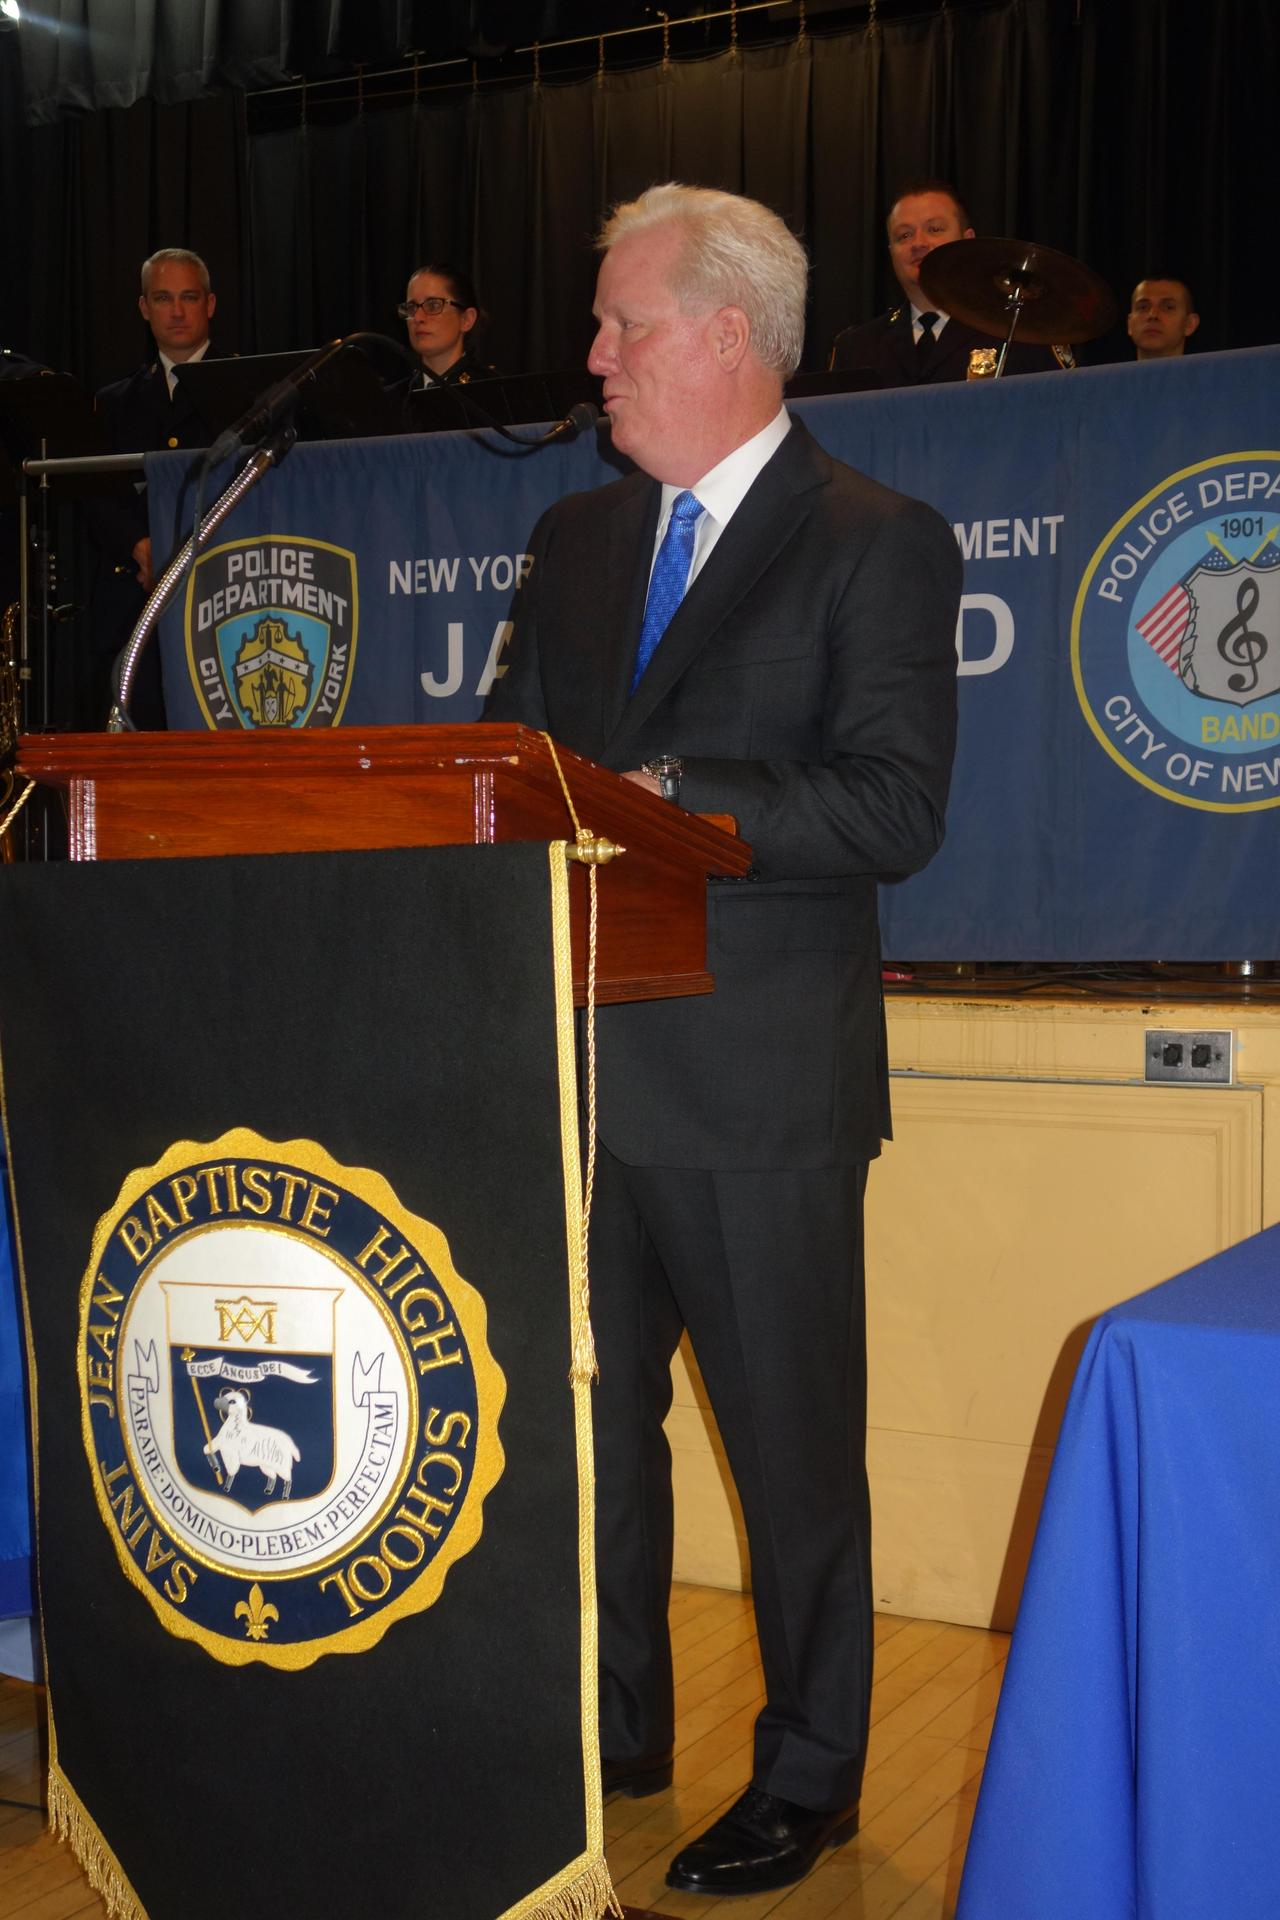 Man in suit with white hair speaks from wooden podium with navy blue banner with crest of lamb